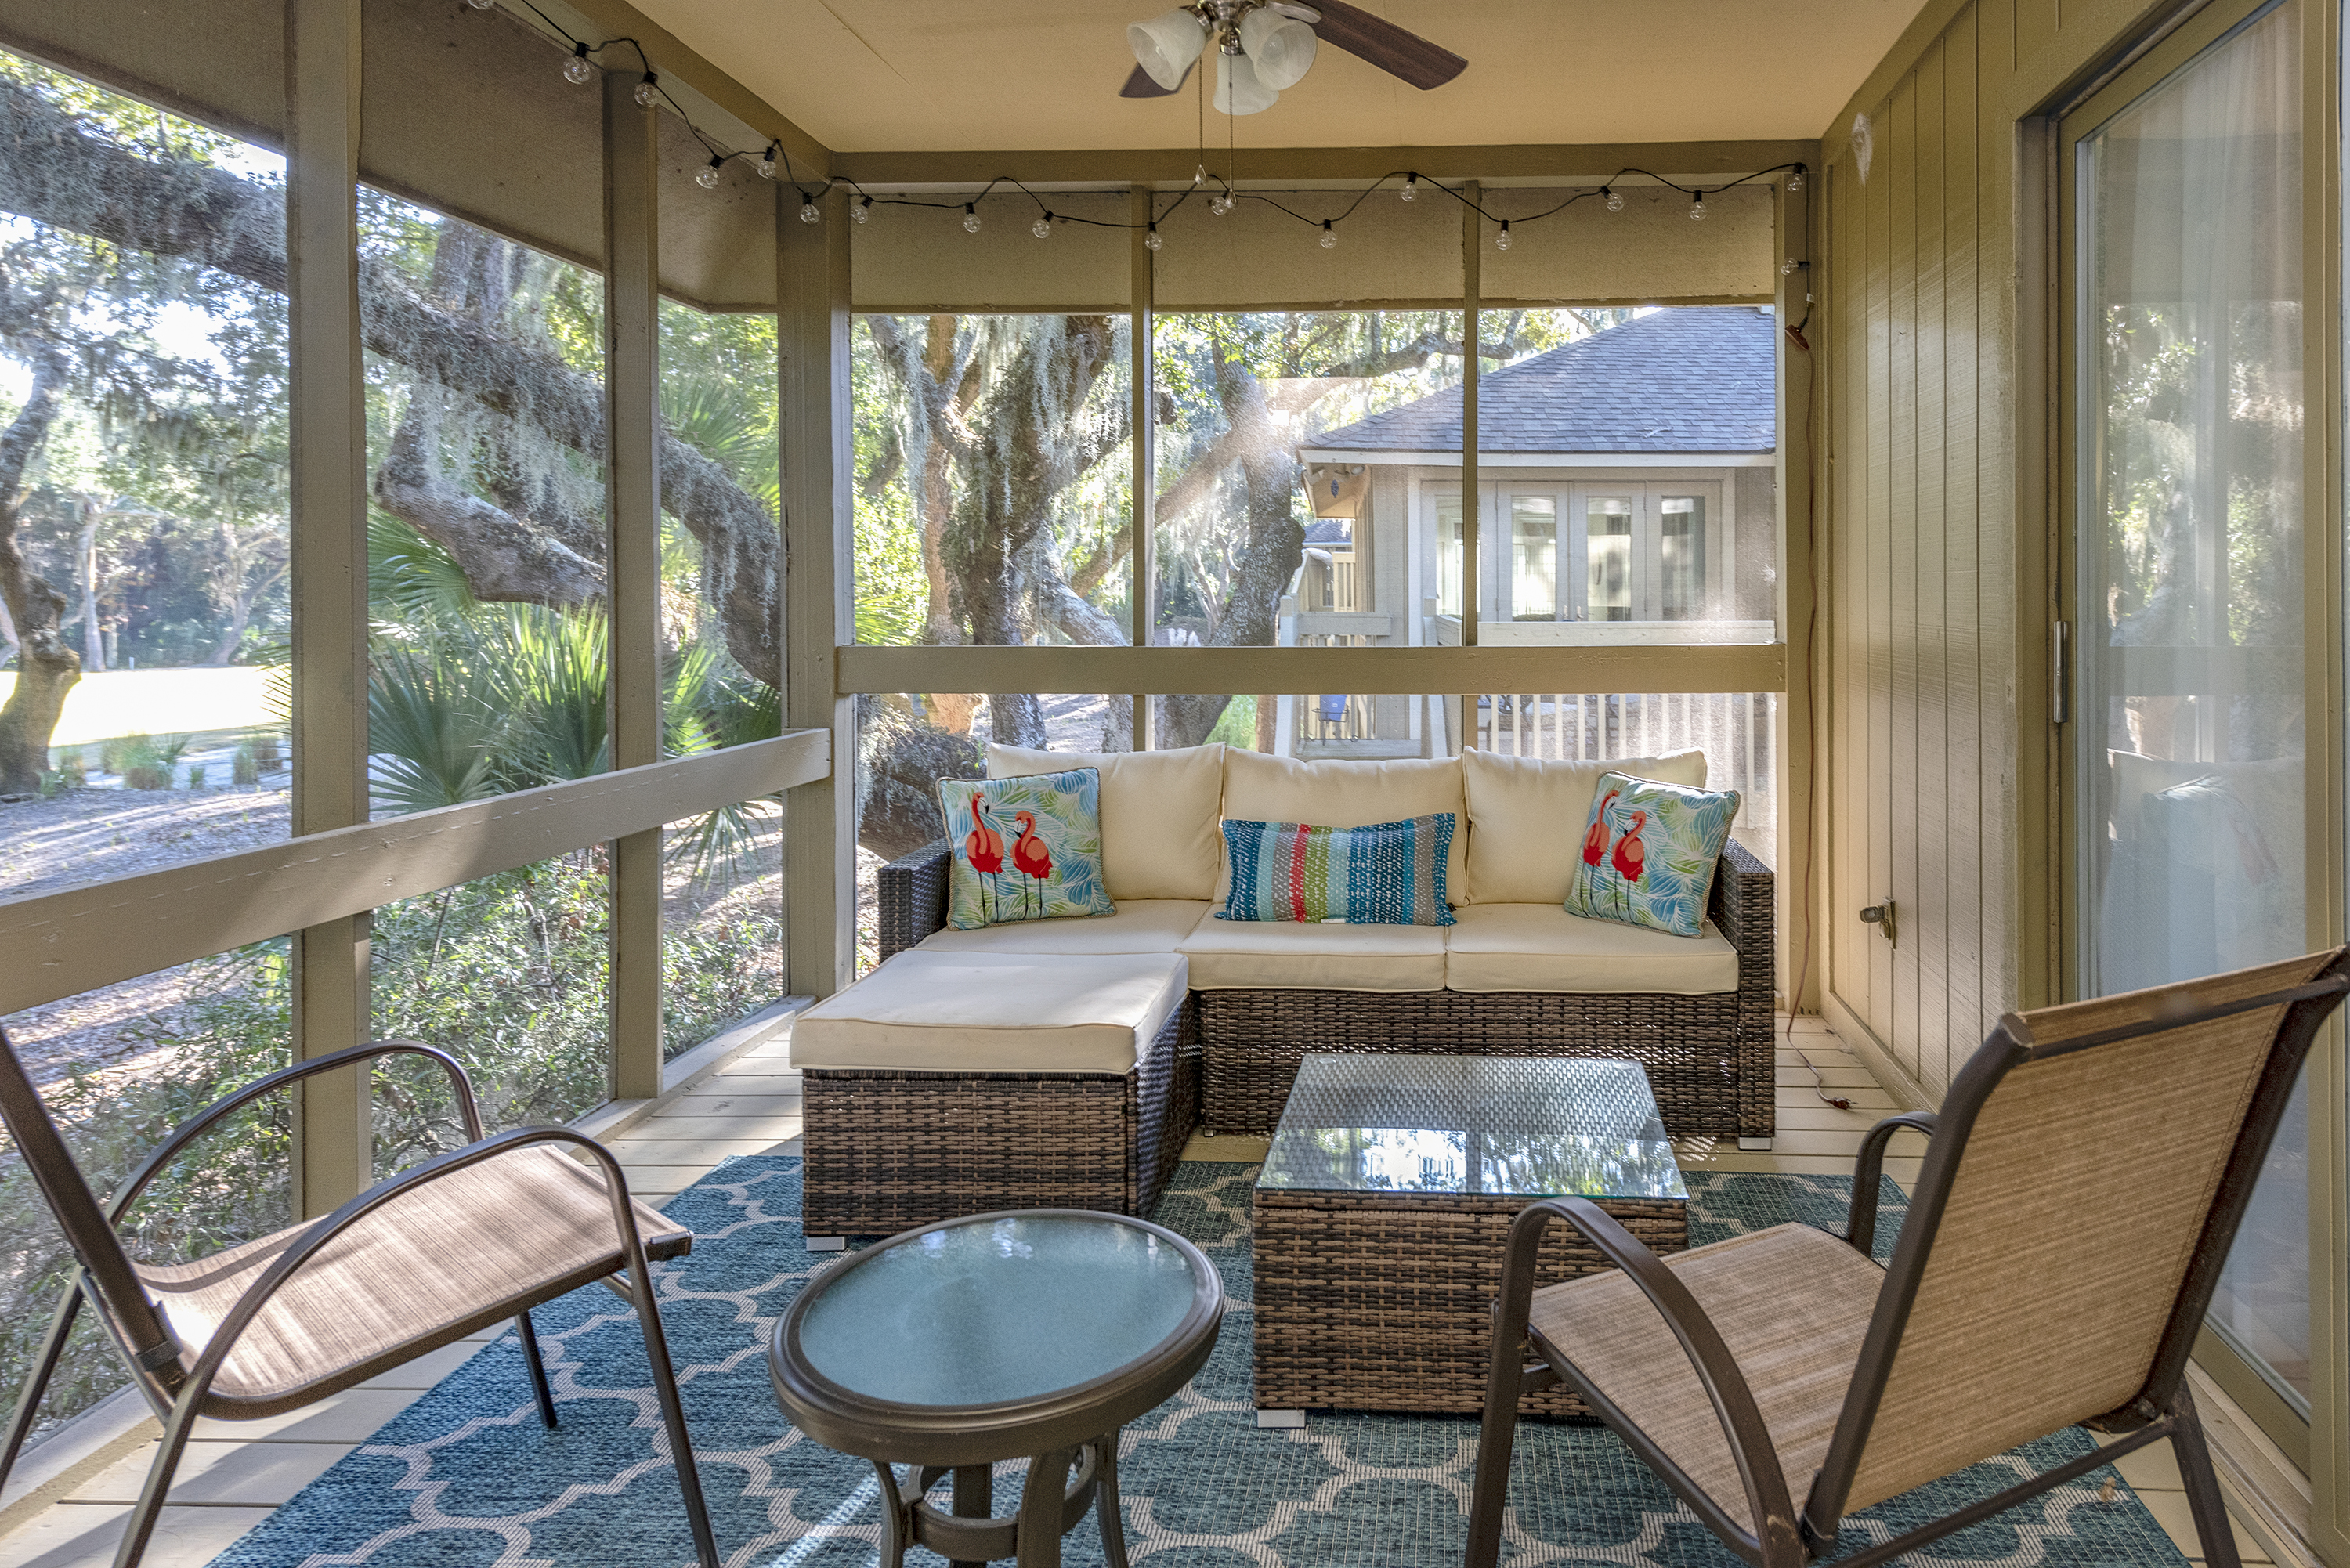 Screened in porch allows for relaxation after a day at the beach.